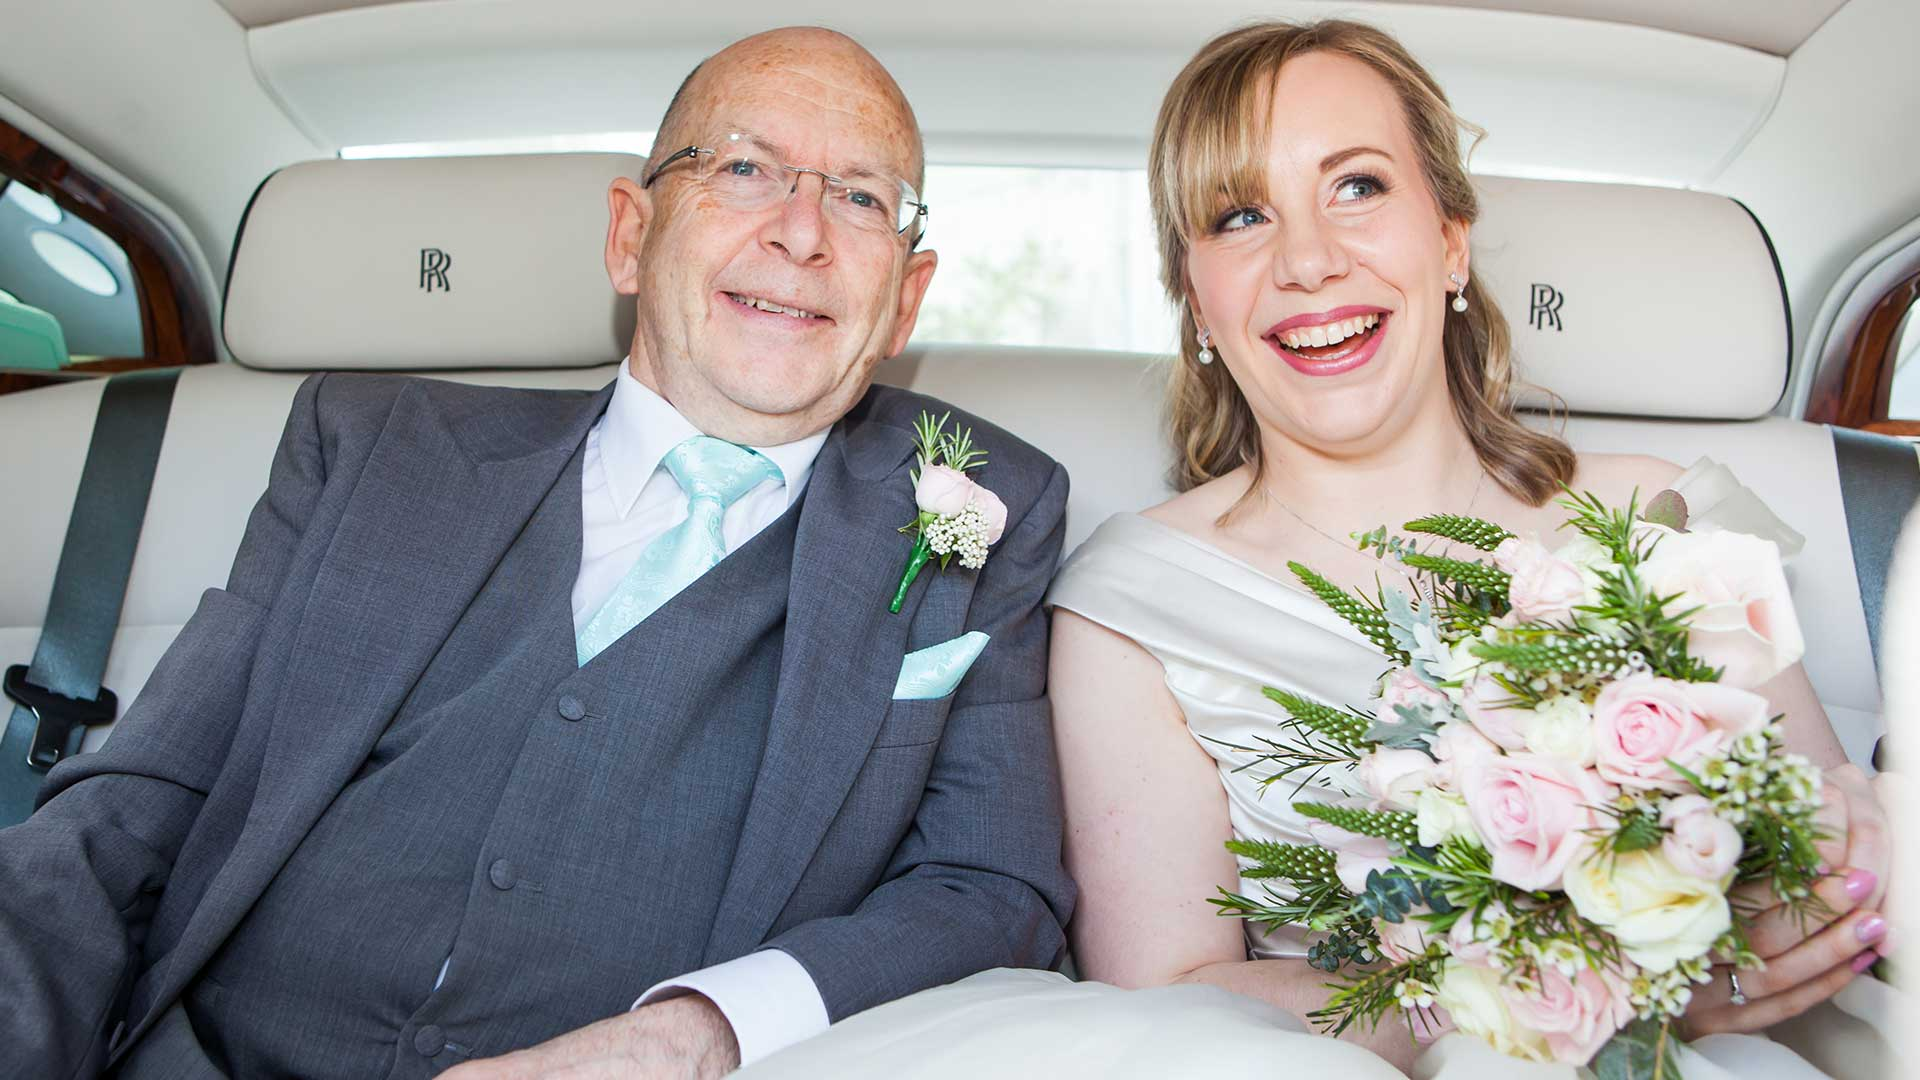 The bride and her Dad on the way to the ceremony in the Rolls-Royce Phantom